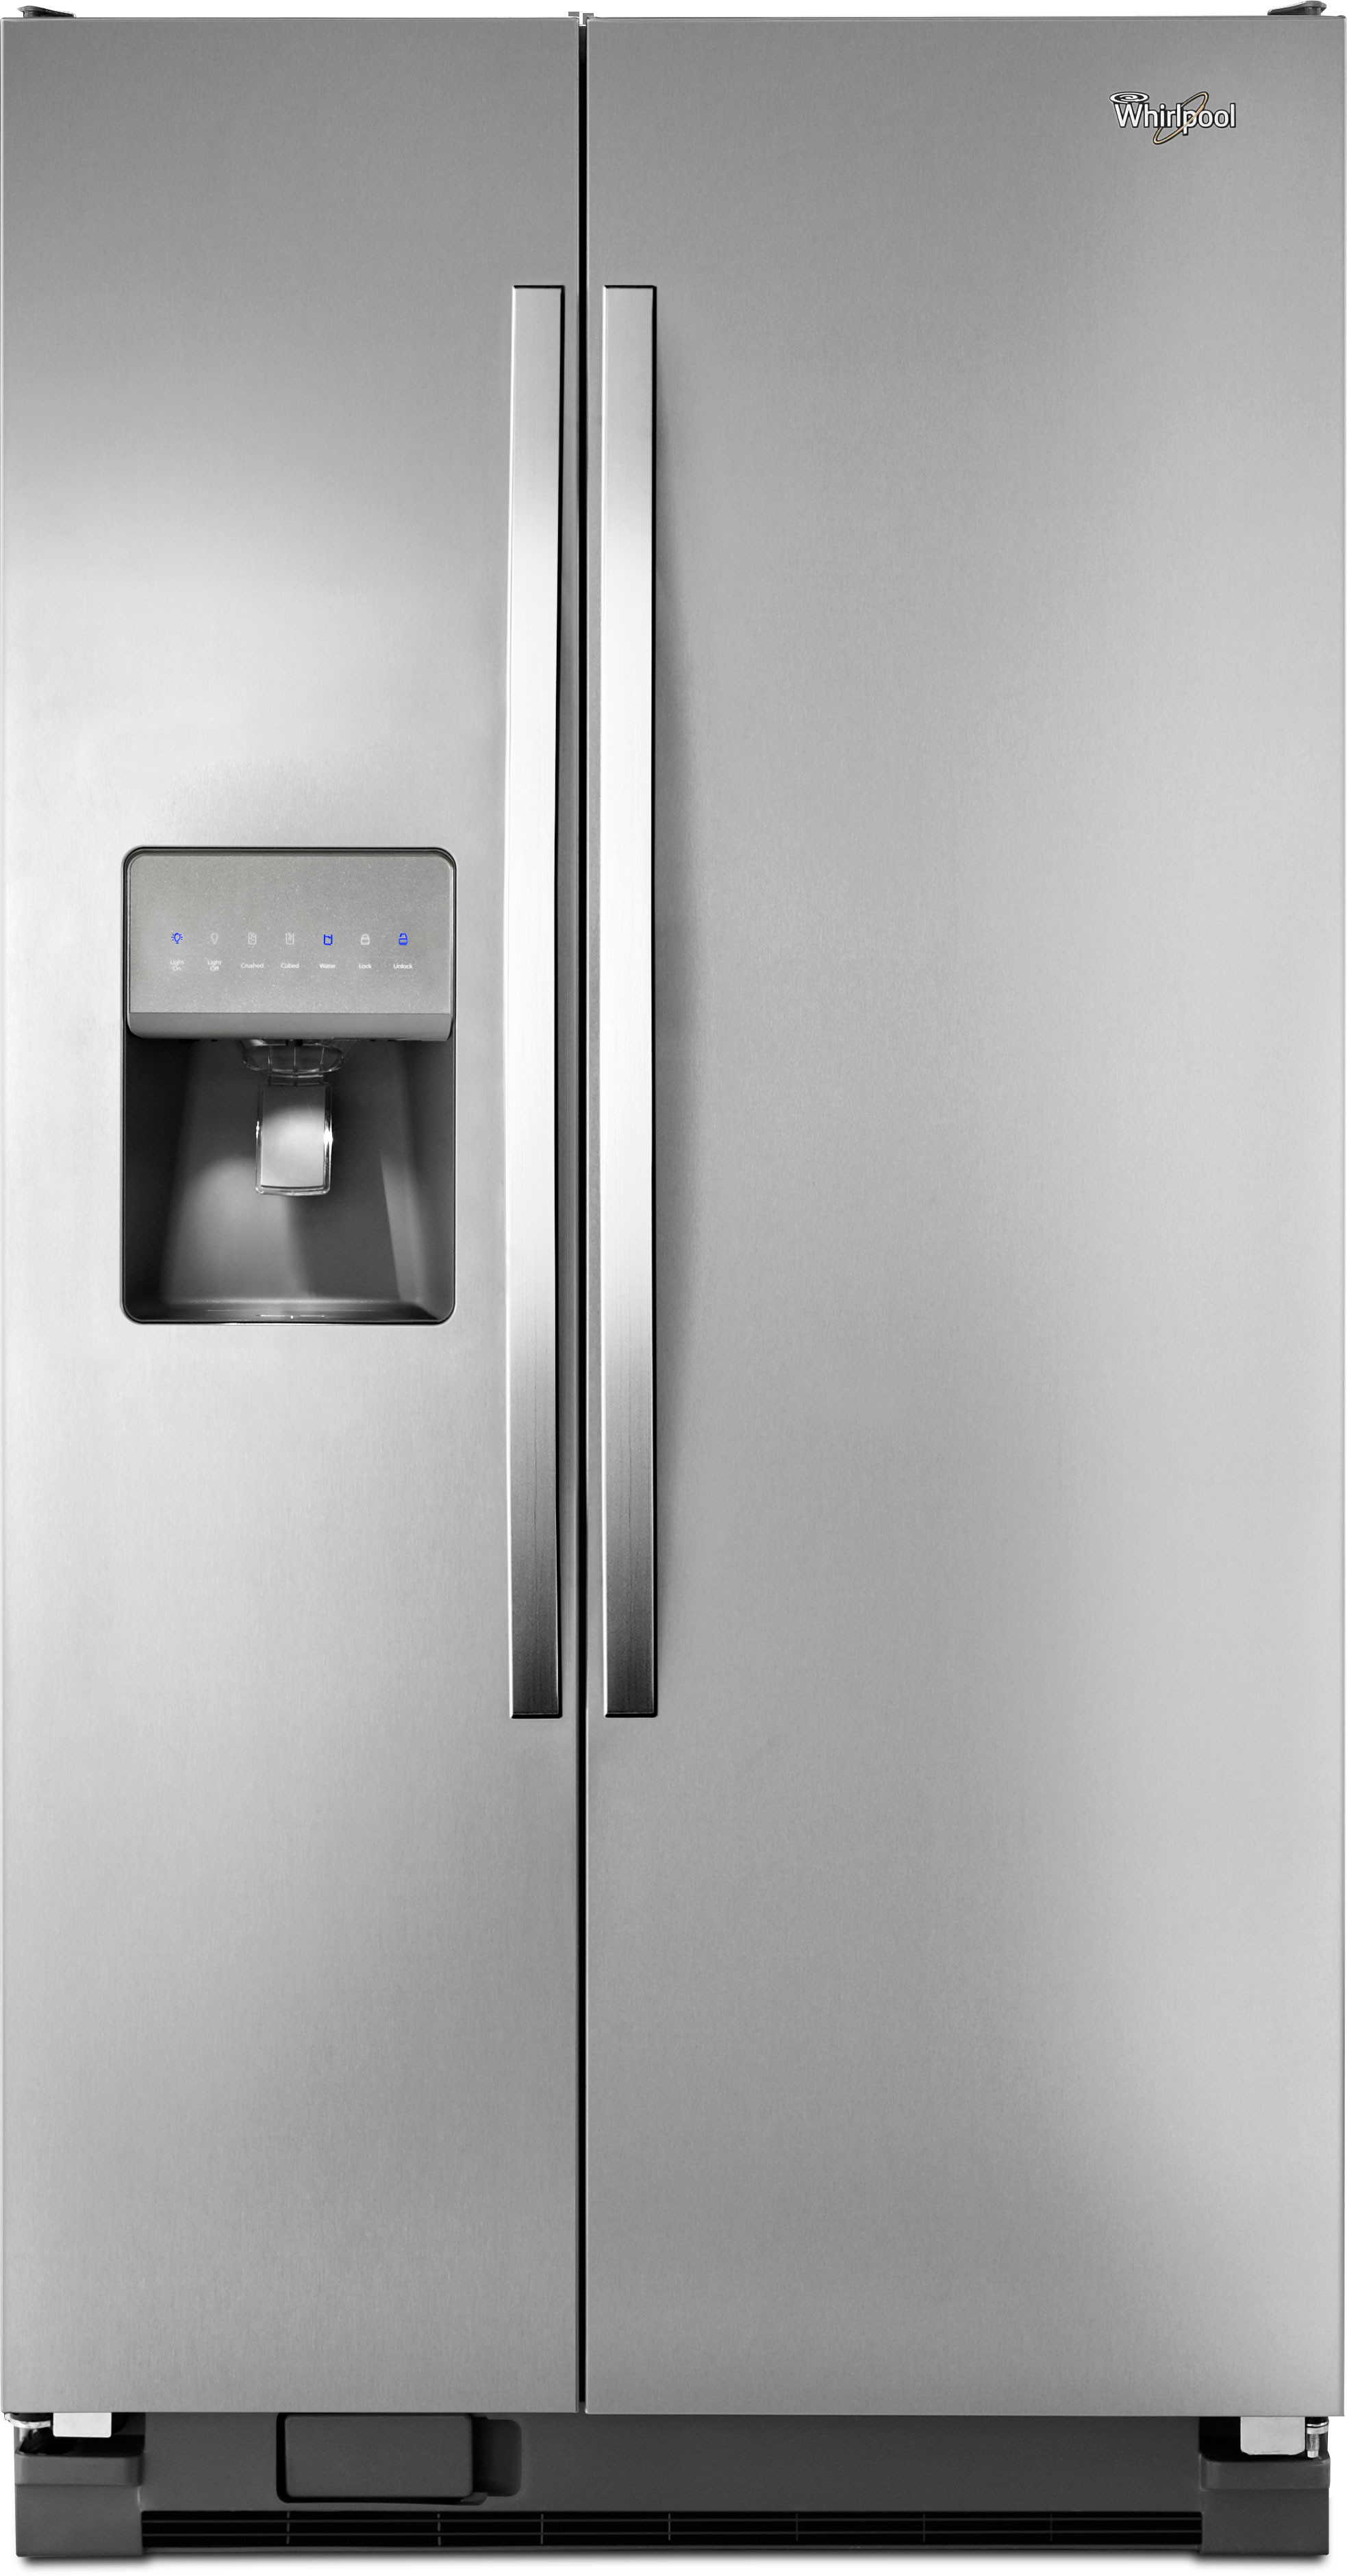 Ge 30 inch side by side white refrigerator - Ge 30 Inch Side By Side White Refrigerator 6